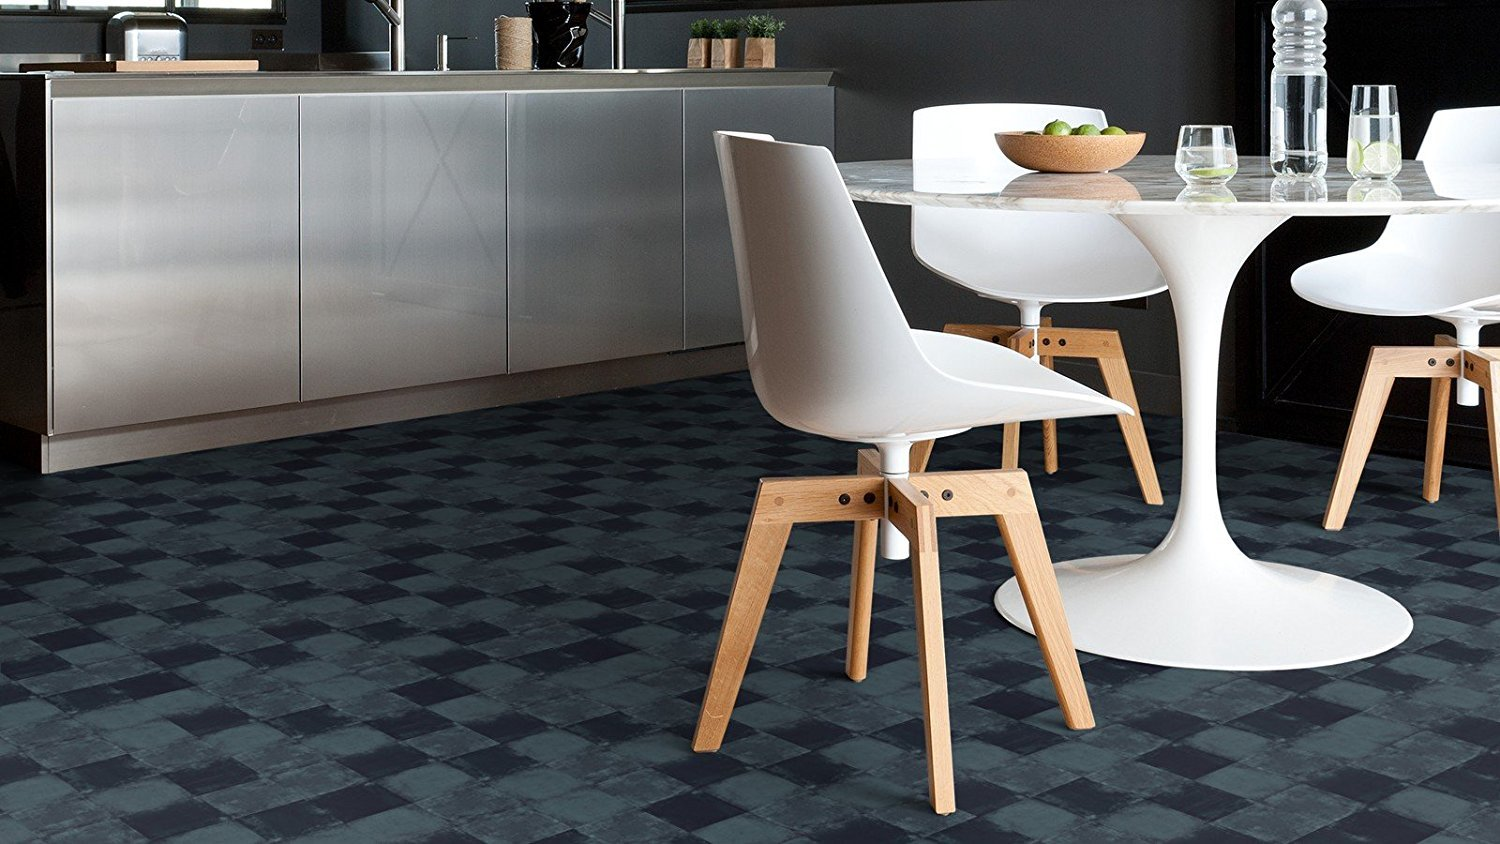 Piastrelle In Vinile Adesive : Adesivi gerflor in vinile piastrelle design square dark in